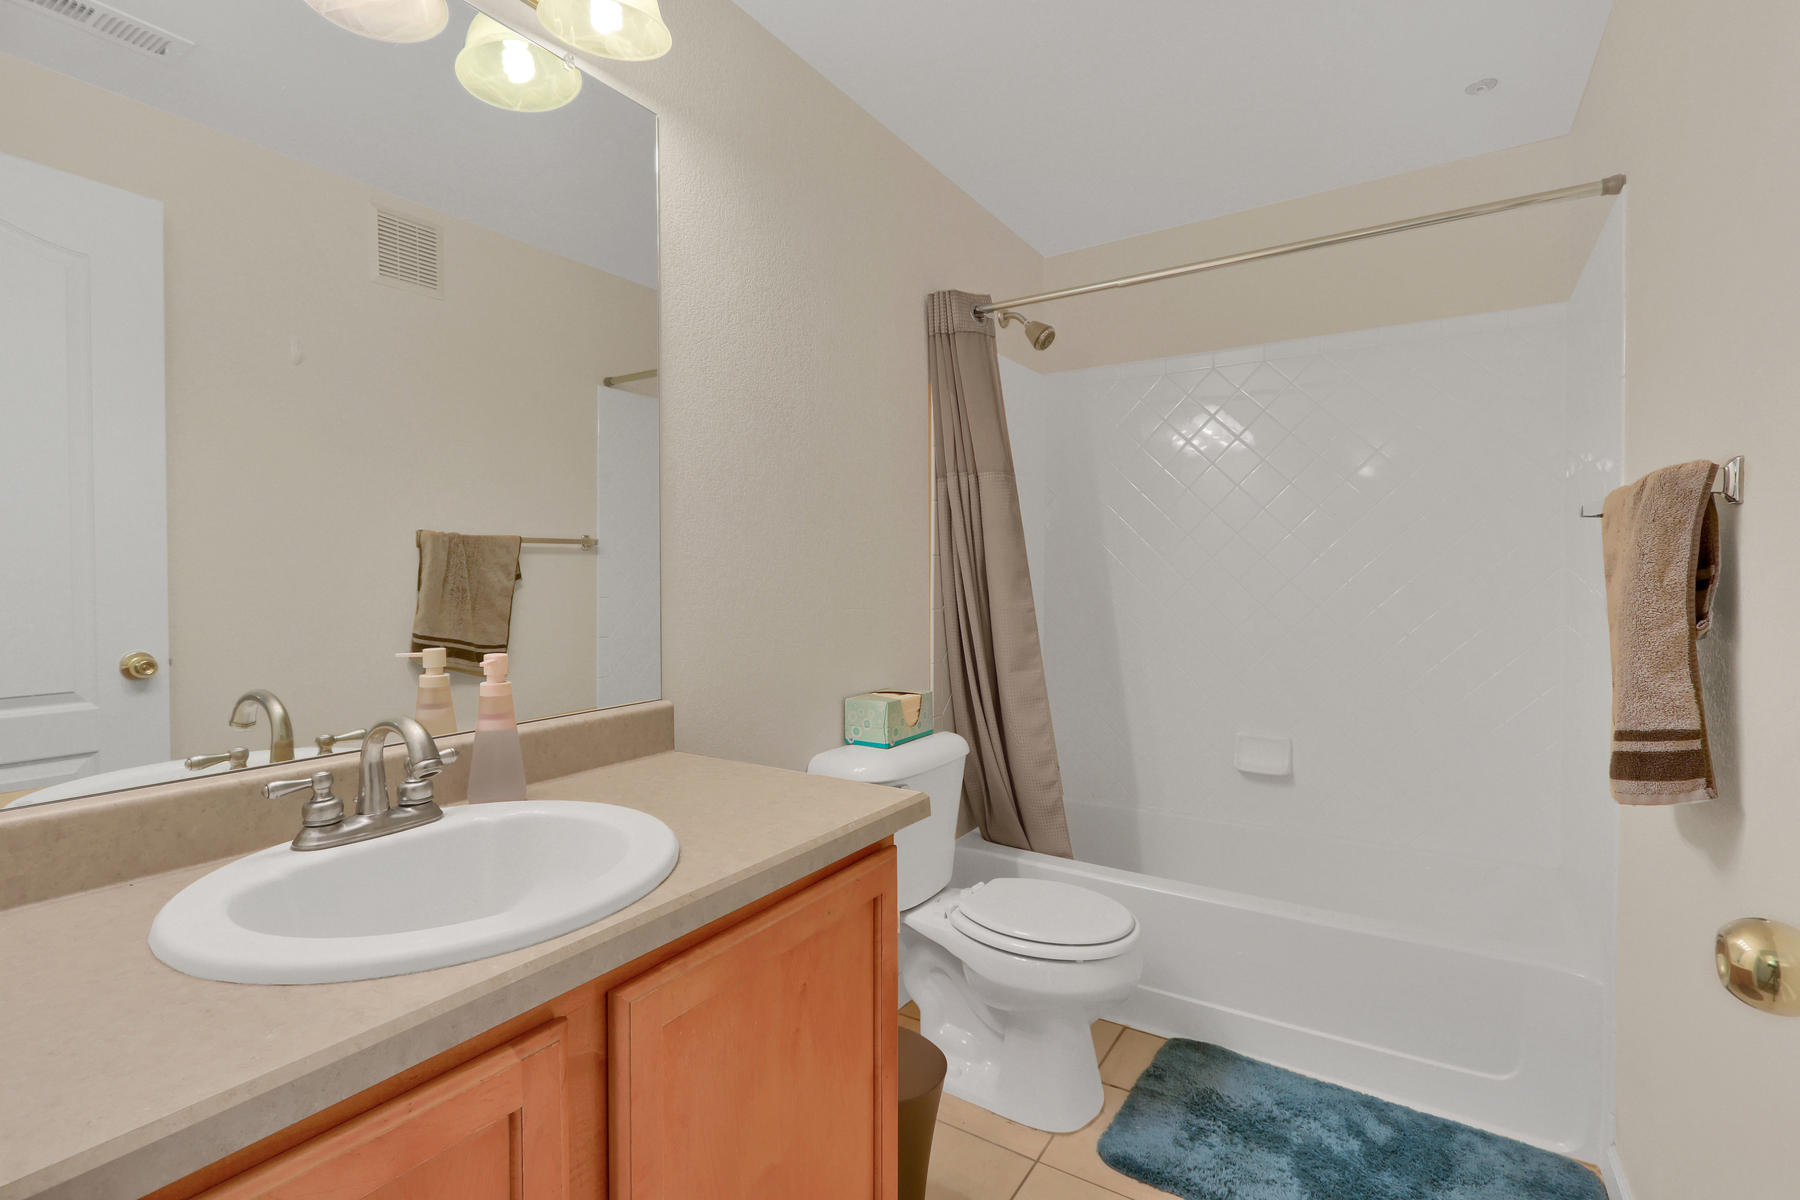 10089 W 55th Drive 204 Arvada-012-016-Bathroom-MLS_Size.jpg